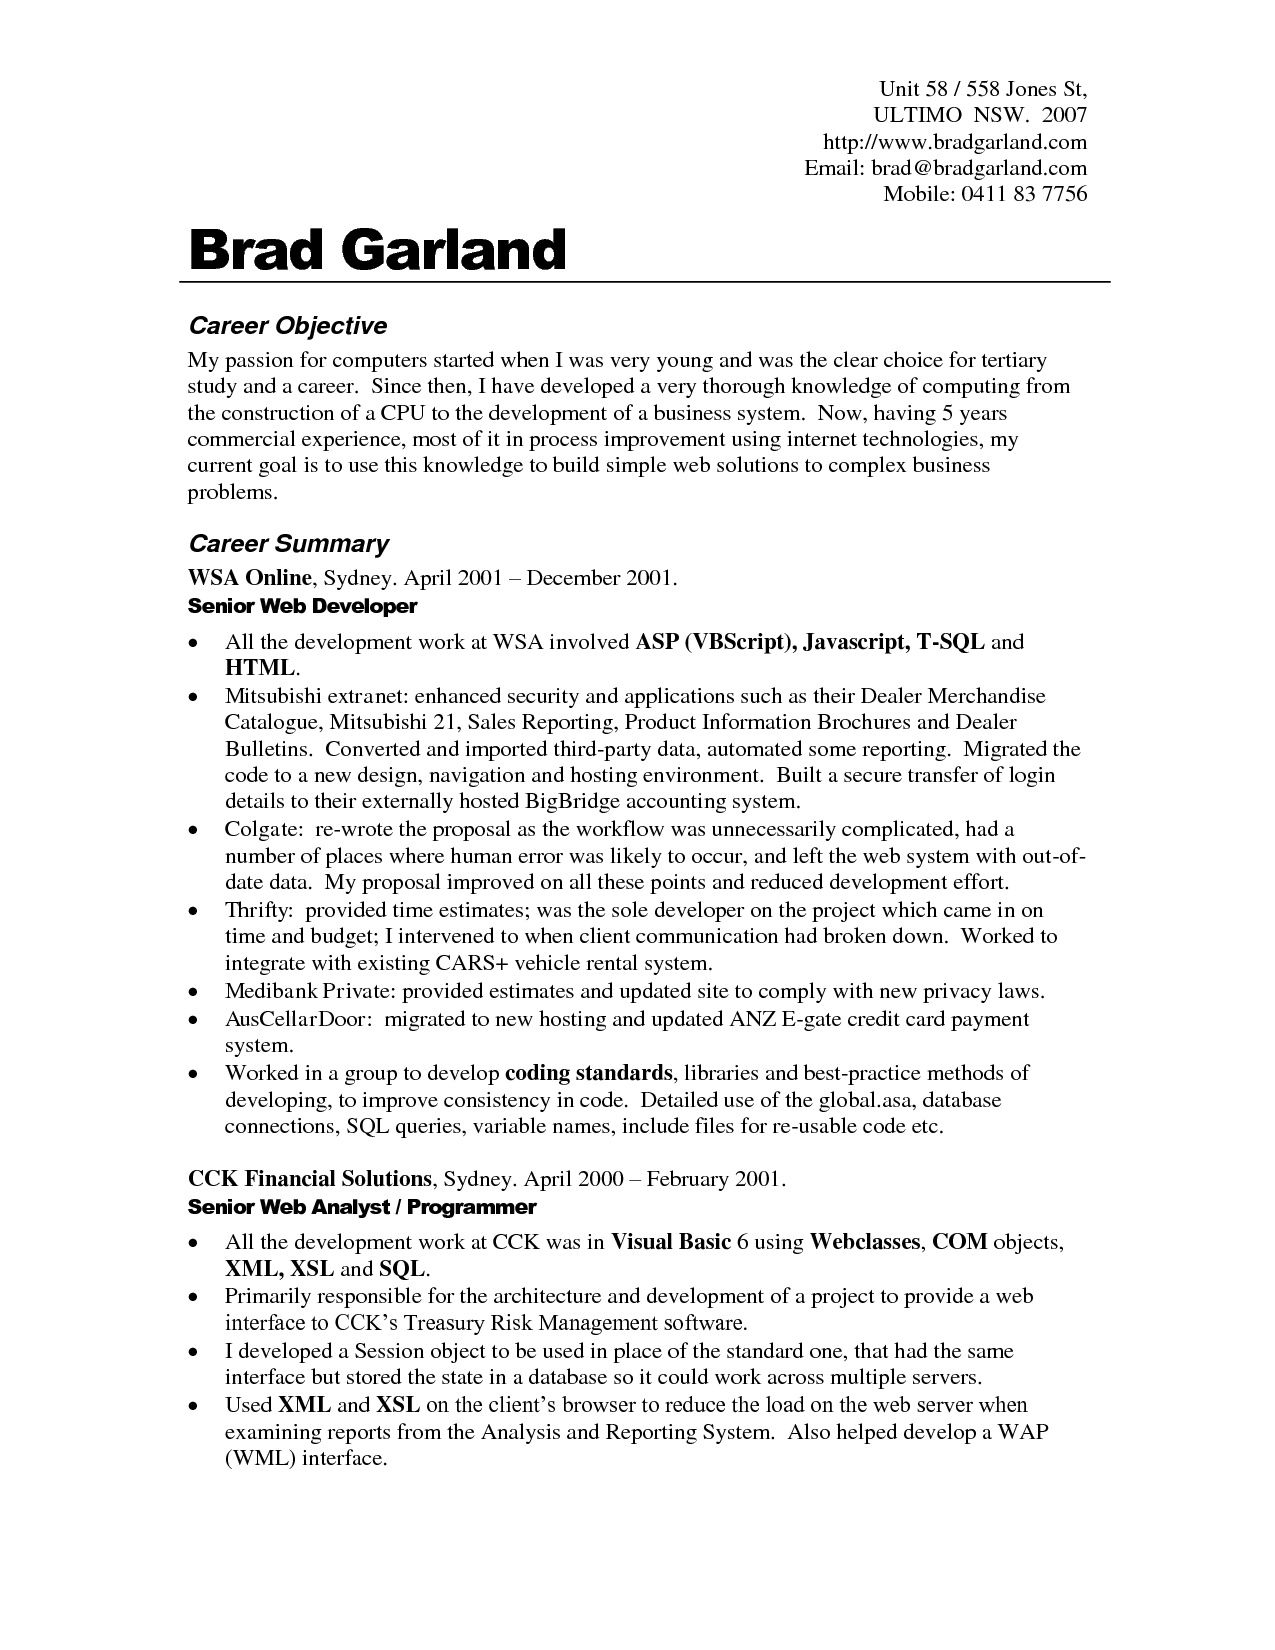 sample career objective in resumes - Sample Job Objective For Resume